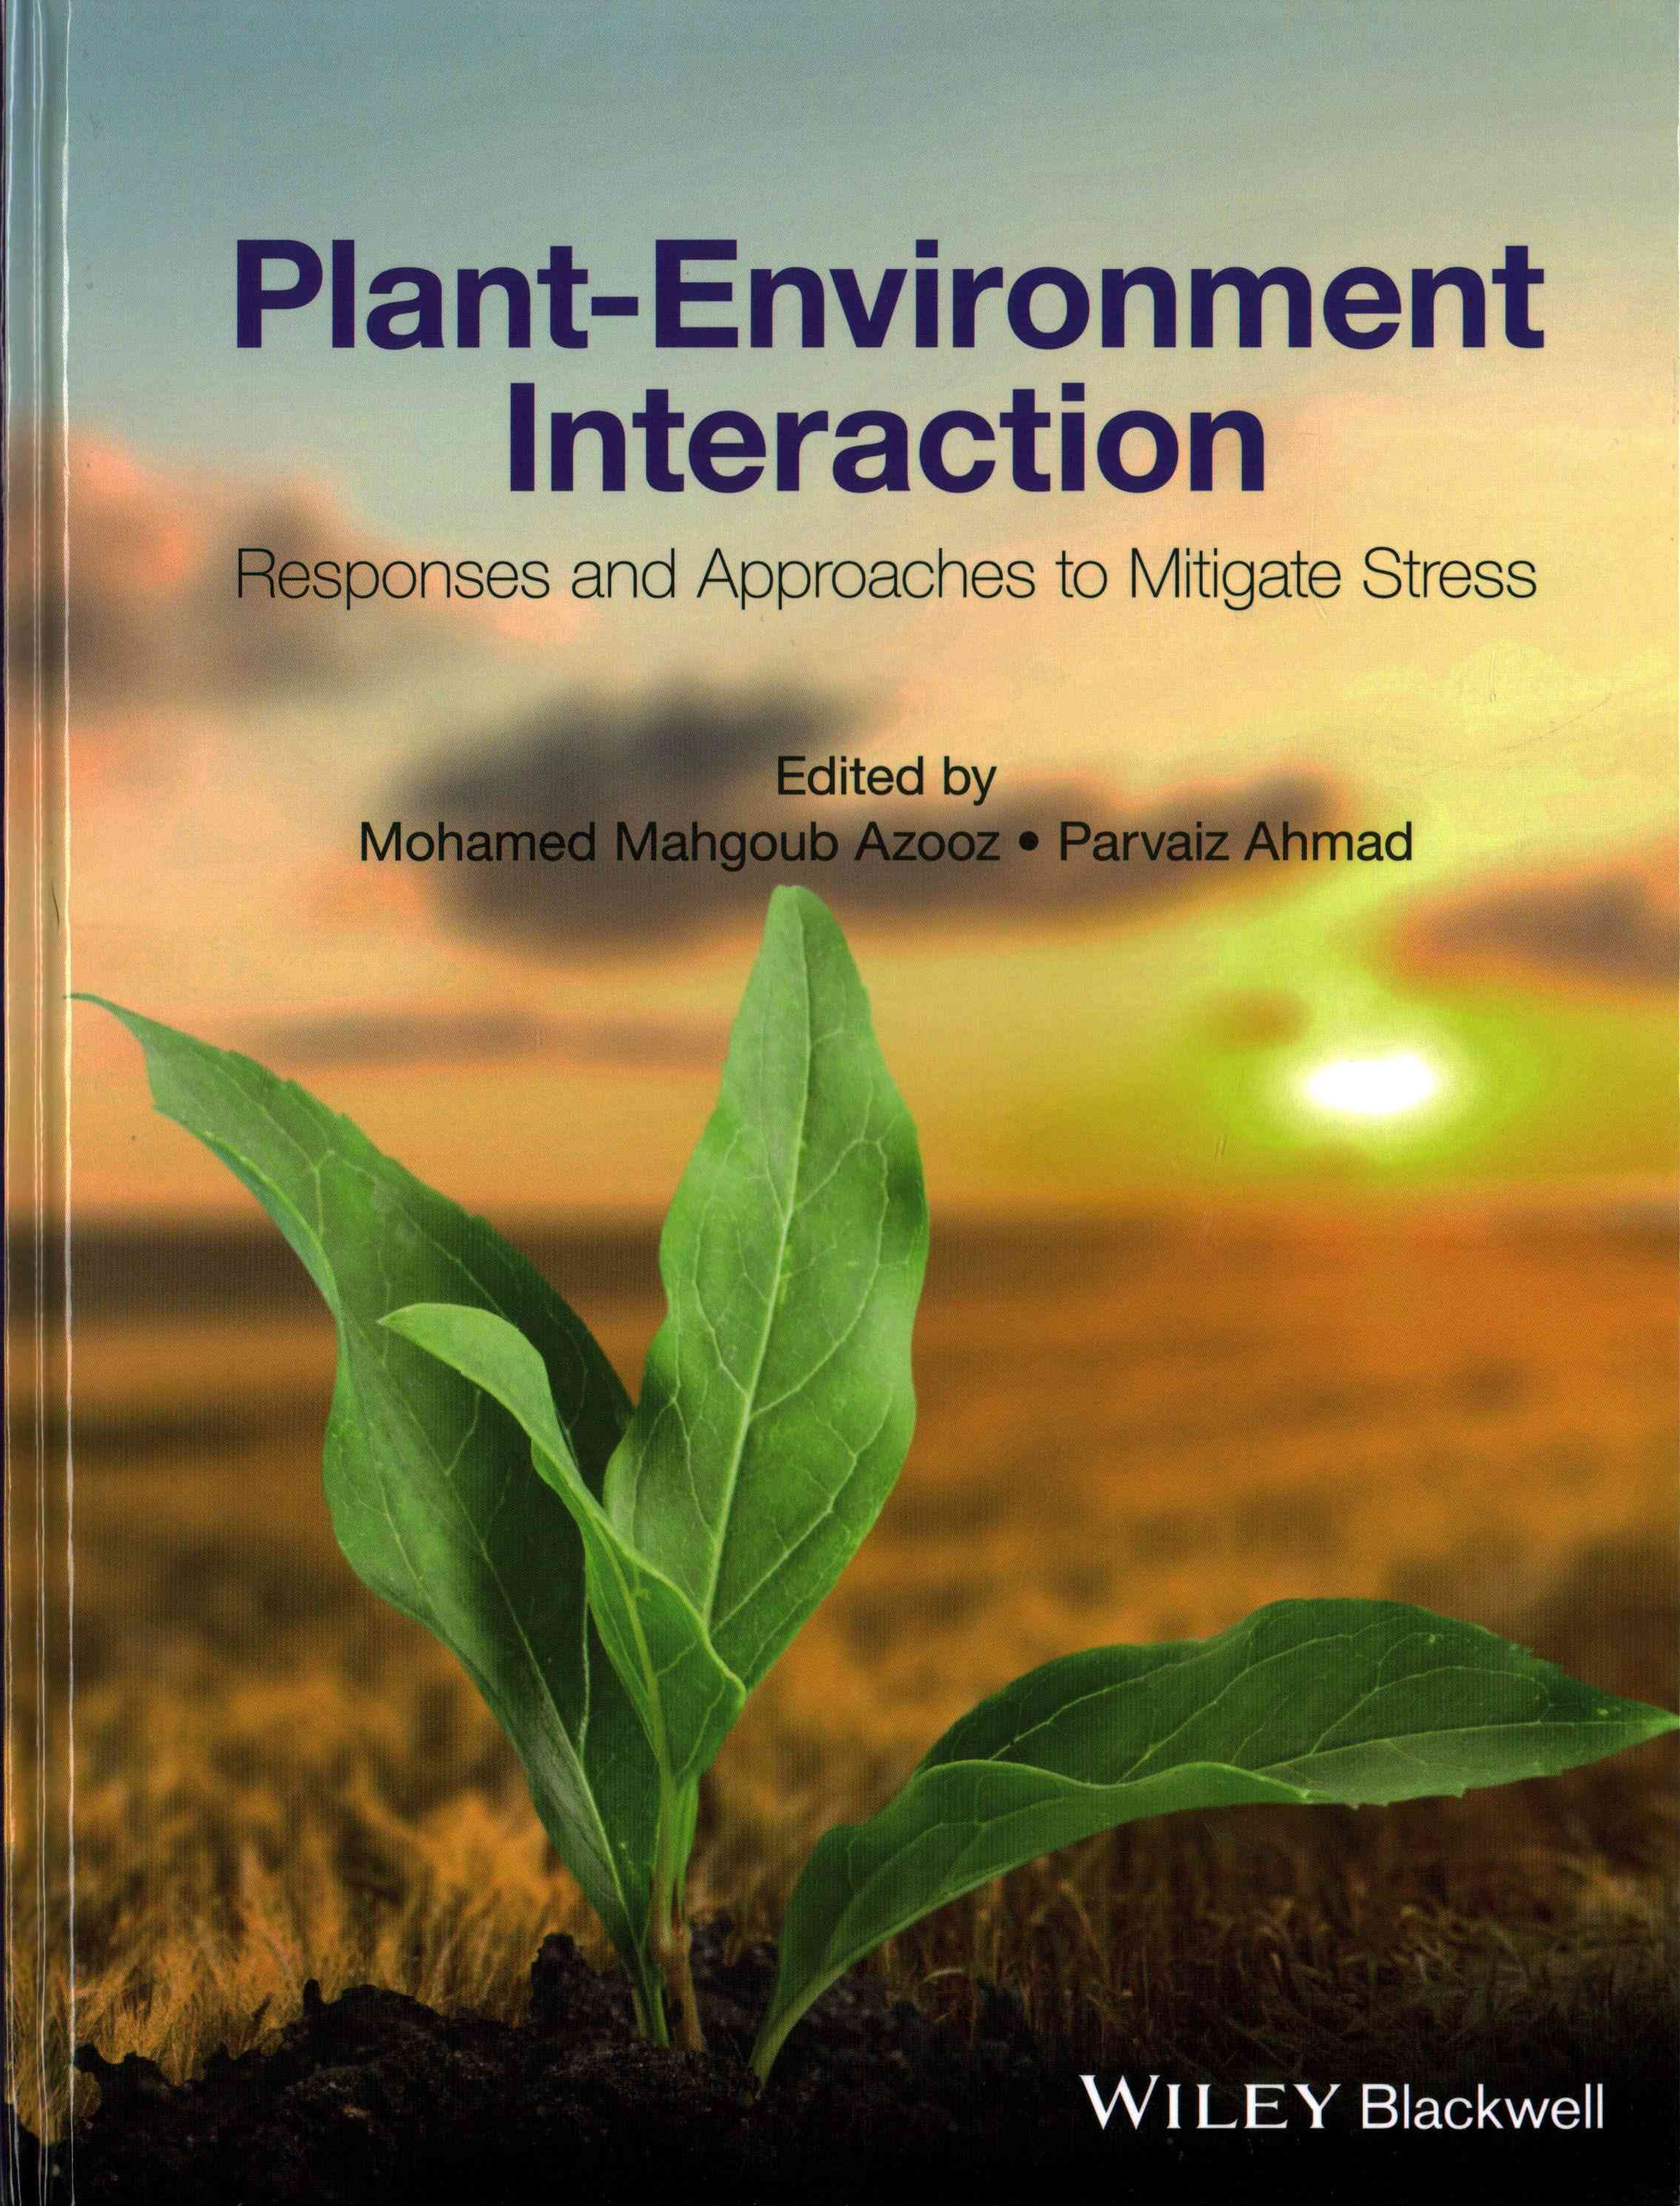 Plant-environment Interaction - Responses and     Approches to Mitigate Stress